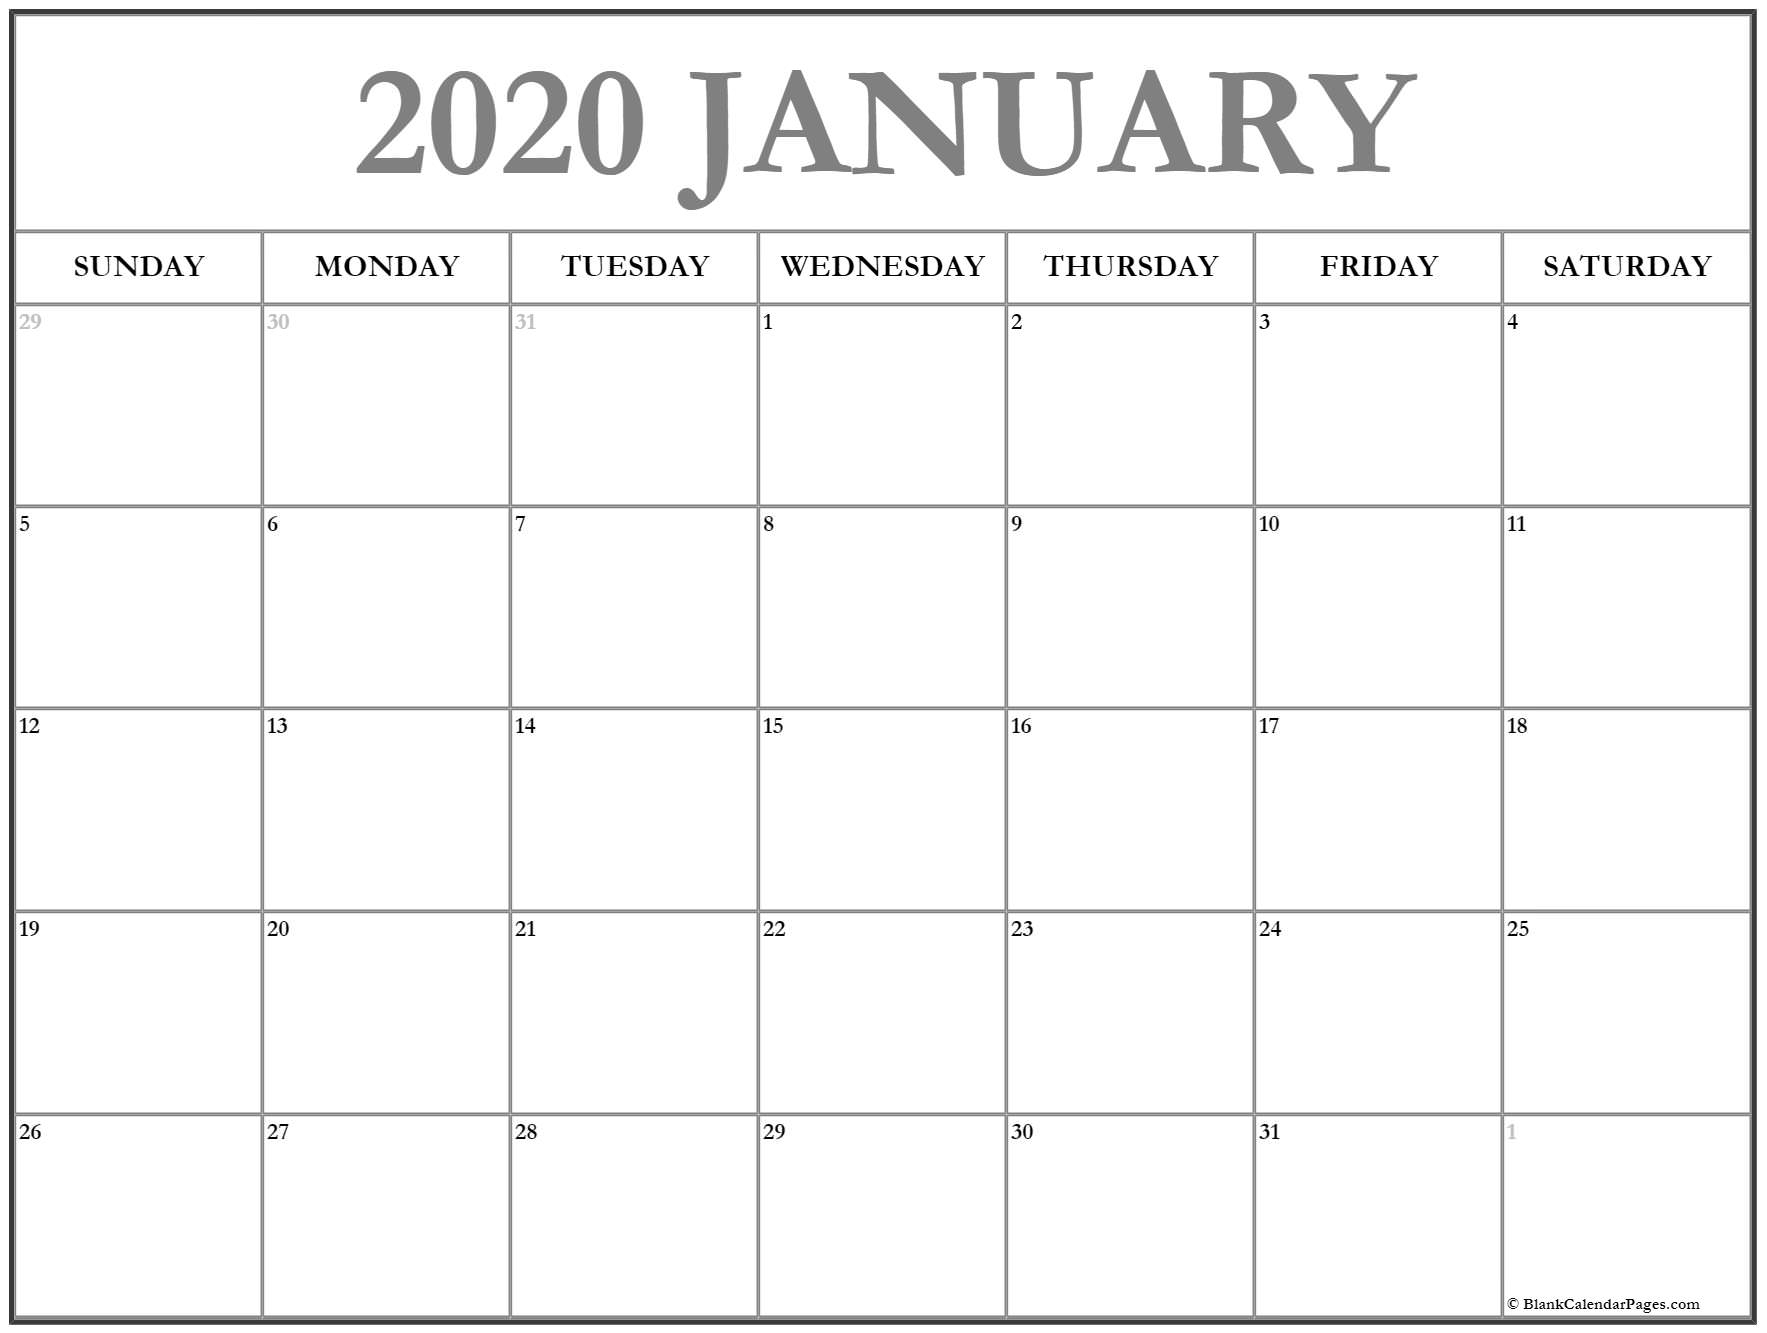 January 2020 Calendar | Free Printable Monthly Calendars with regard to Free Printable 2020 Canadian Calendar Motivational